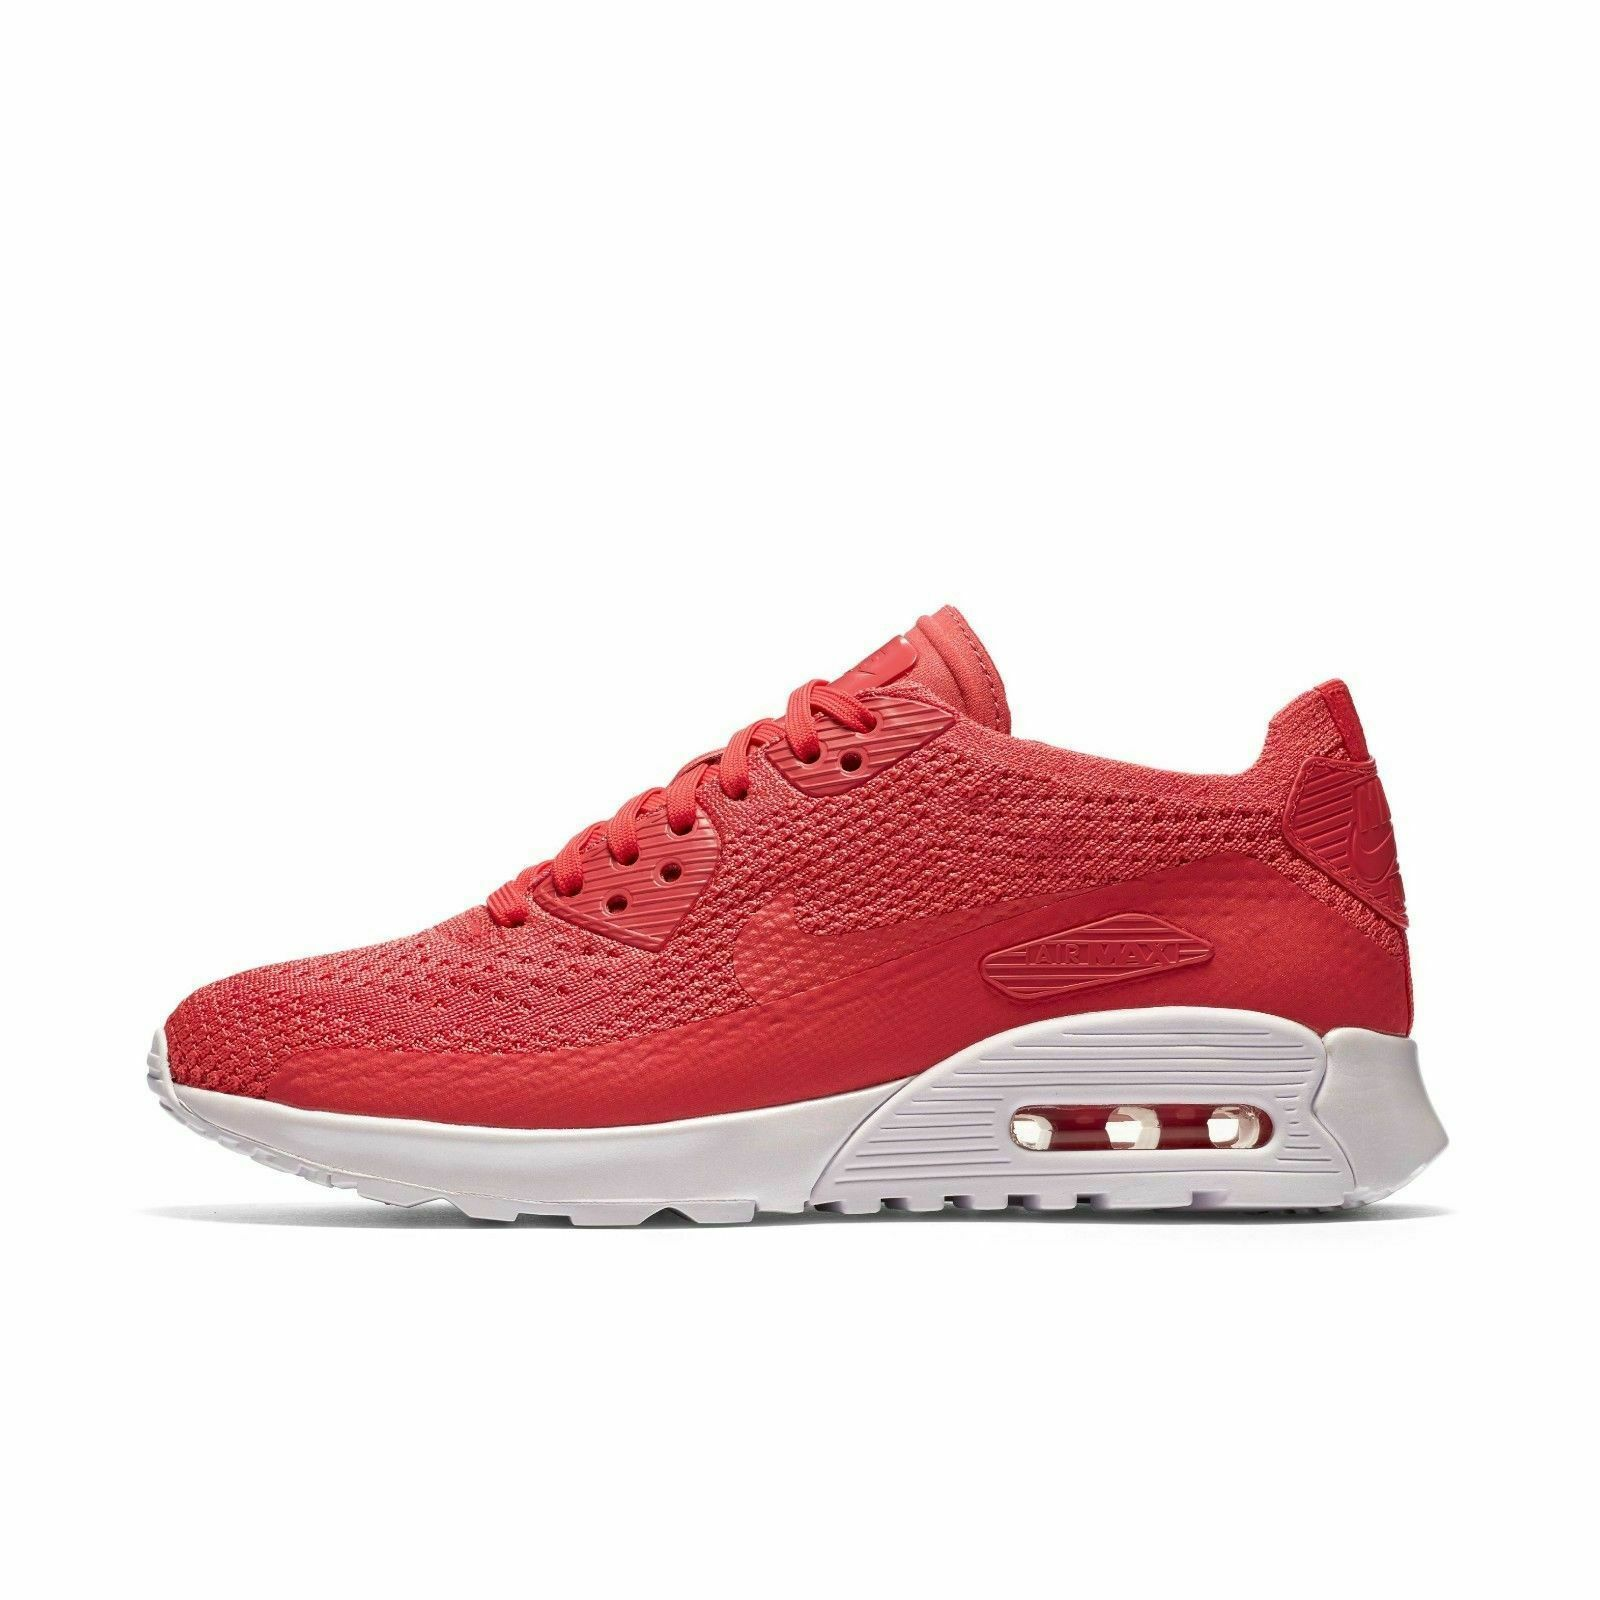 Nike Air Max 90 Ultra 2.0 2.0 2.0 Women Running Trainer shoes Sz 6-8 Geranium 881109 600 de89d2